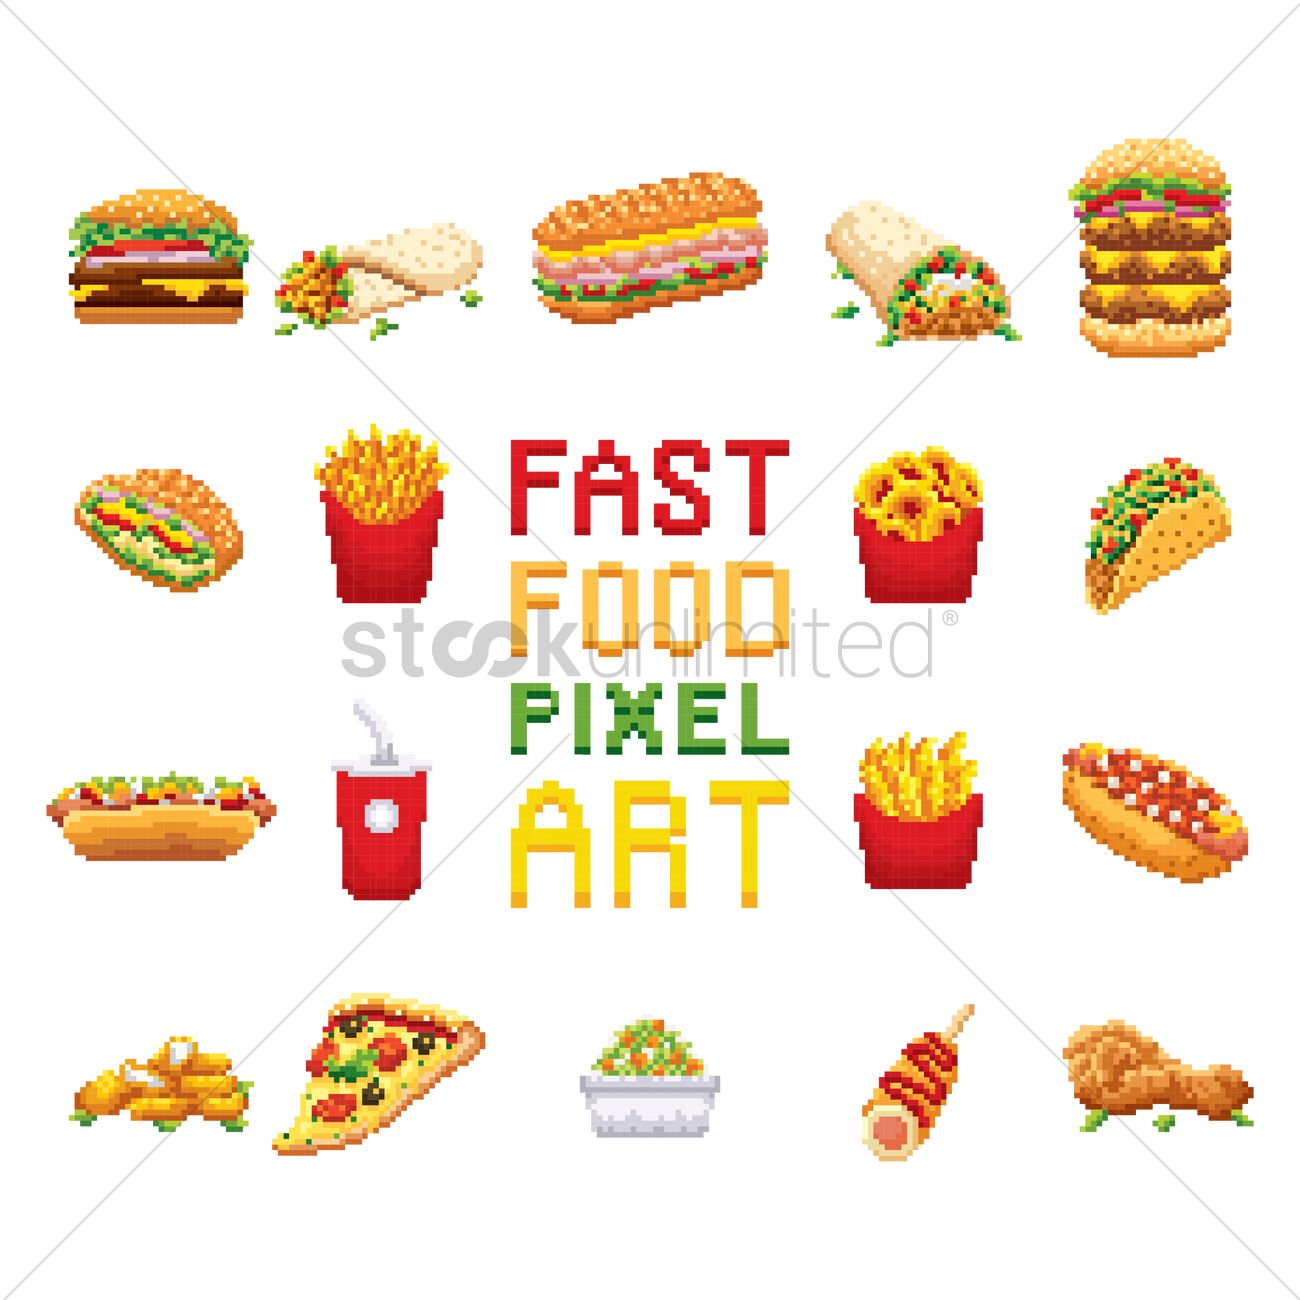 Fast Food Pixel Art Collection Vector Image 1987387